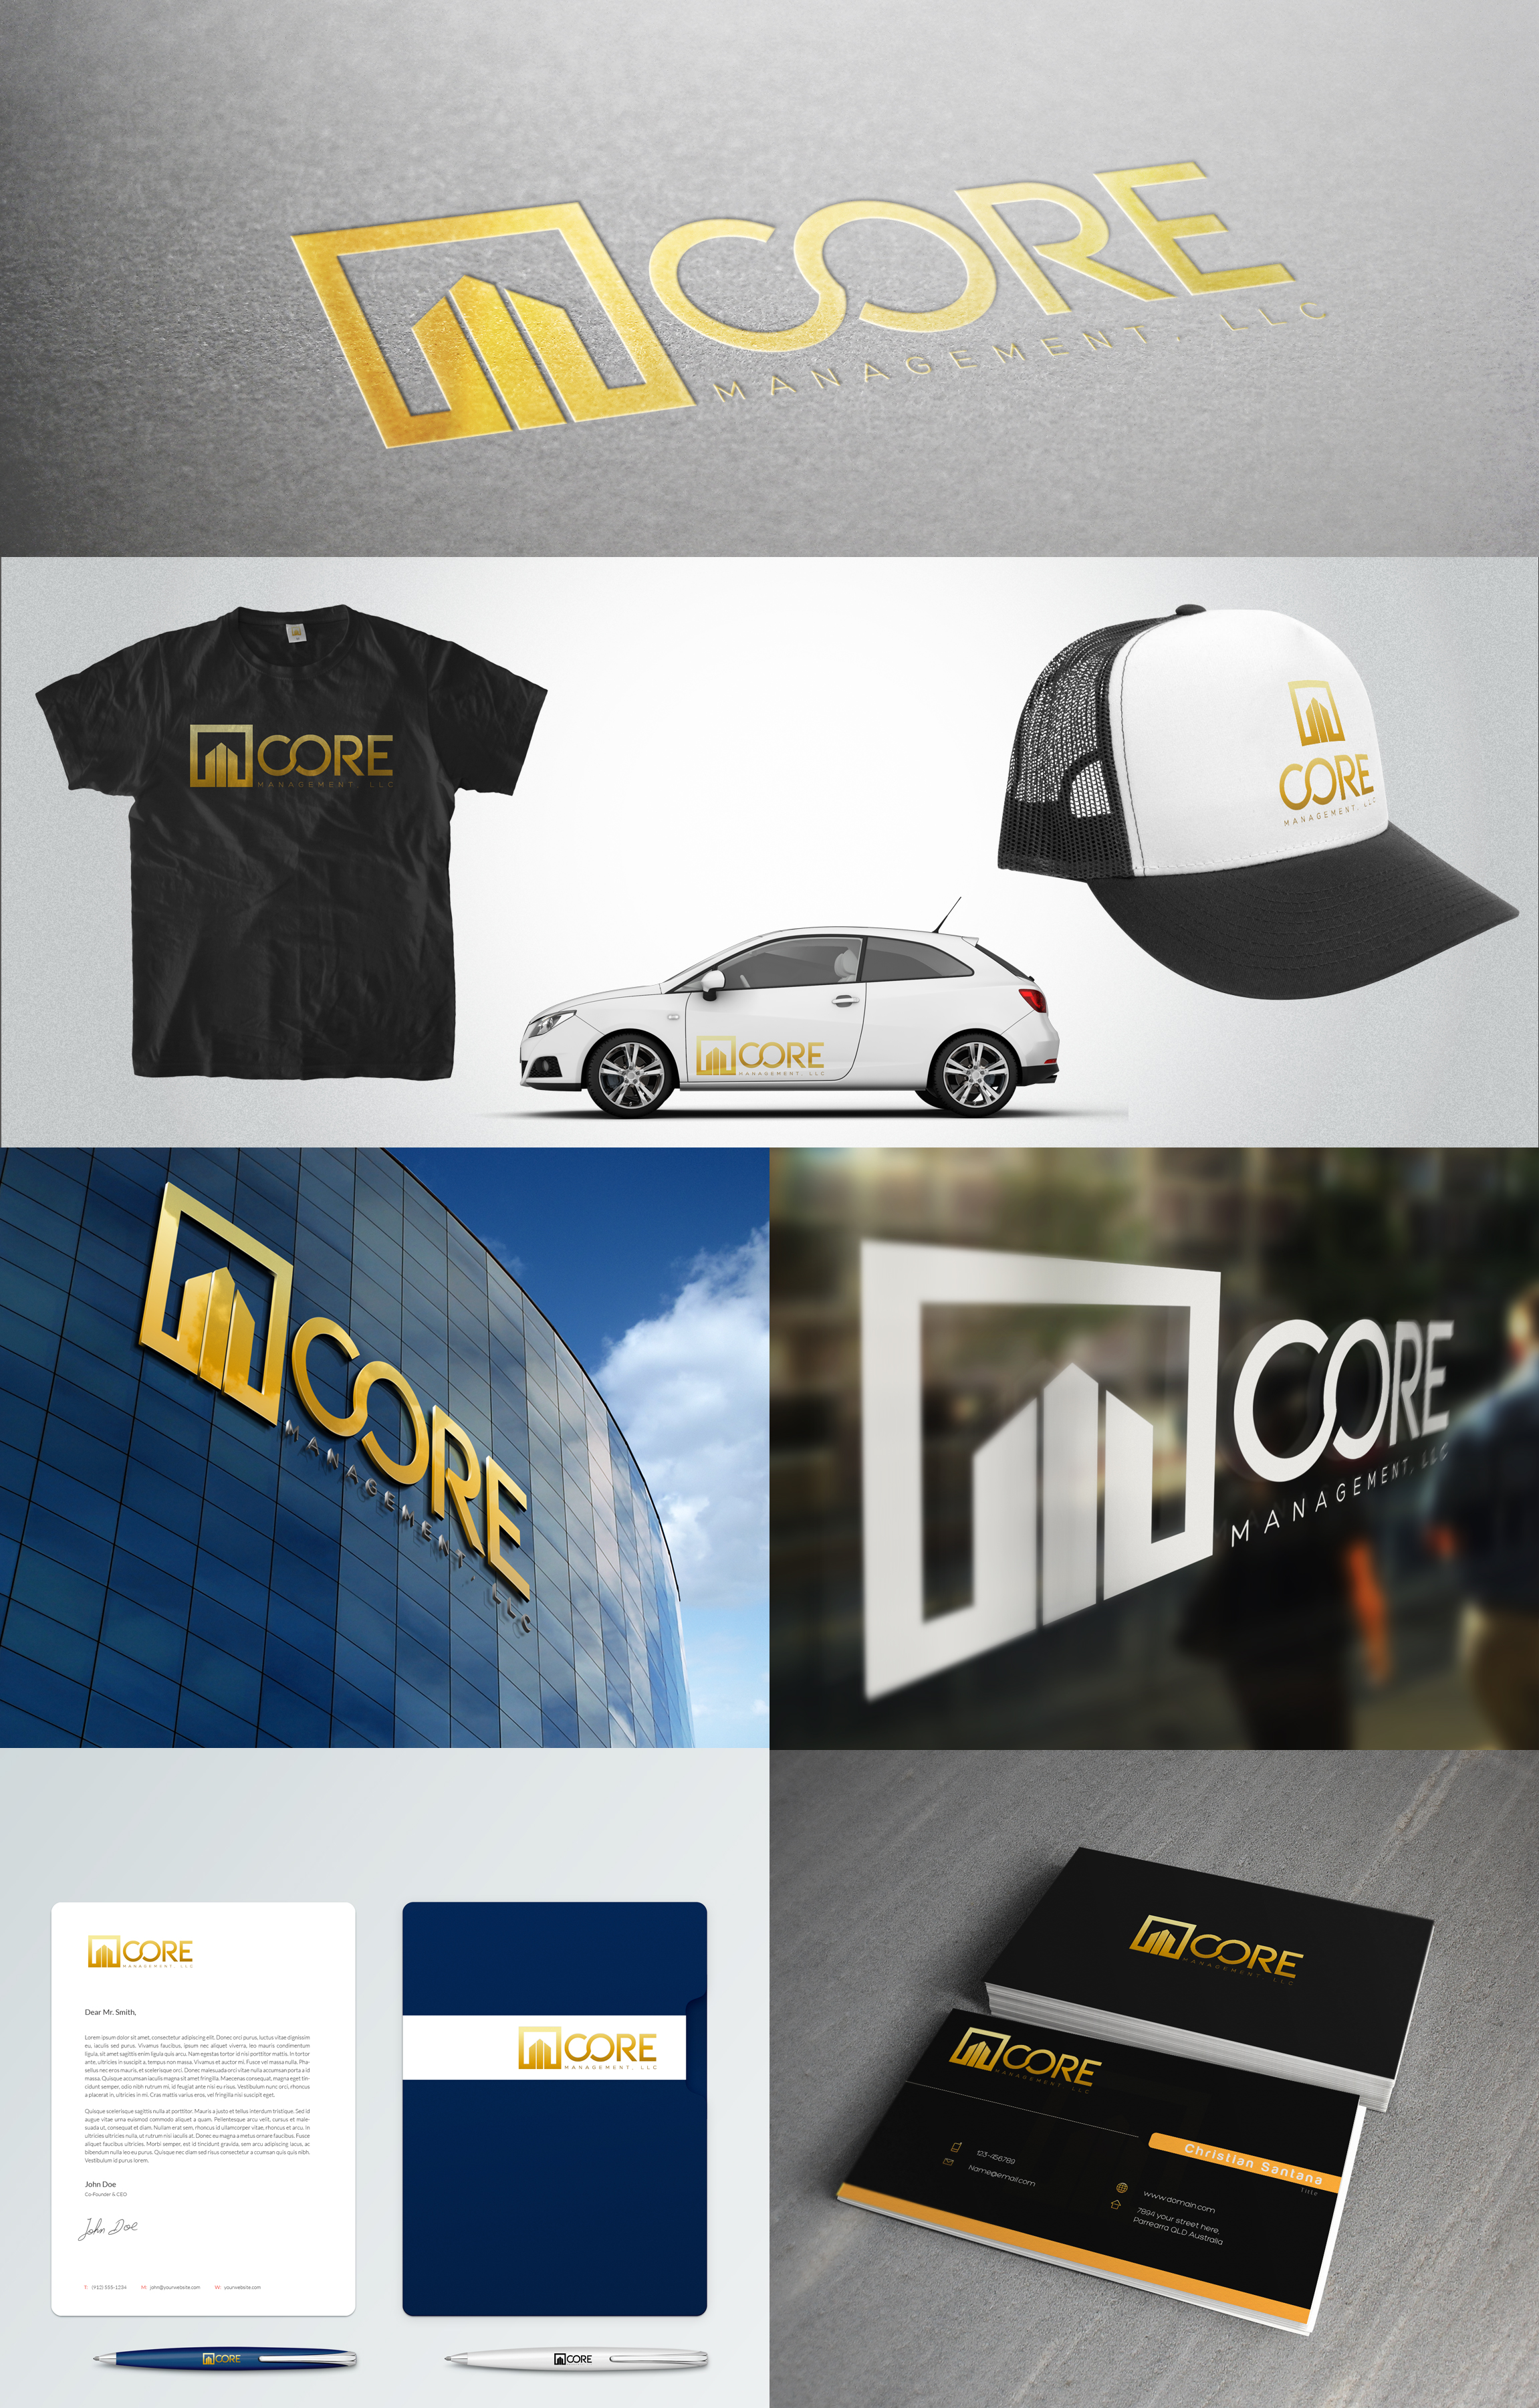 Logo Design by olii - Entry No. 229 in the Logo Design Contest Creative Logo Design for CORE Management, LLC.